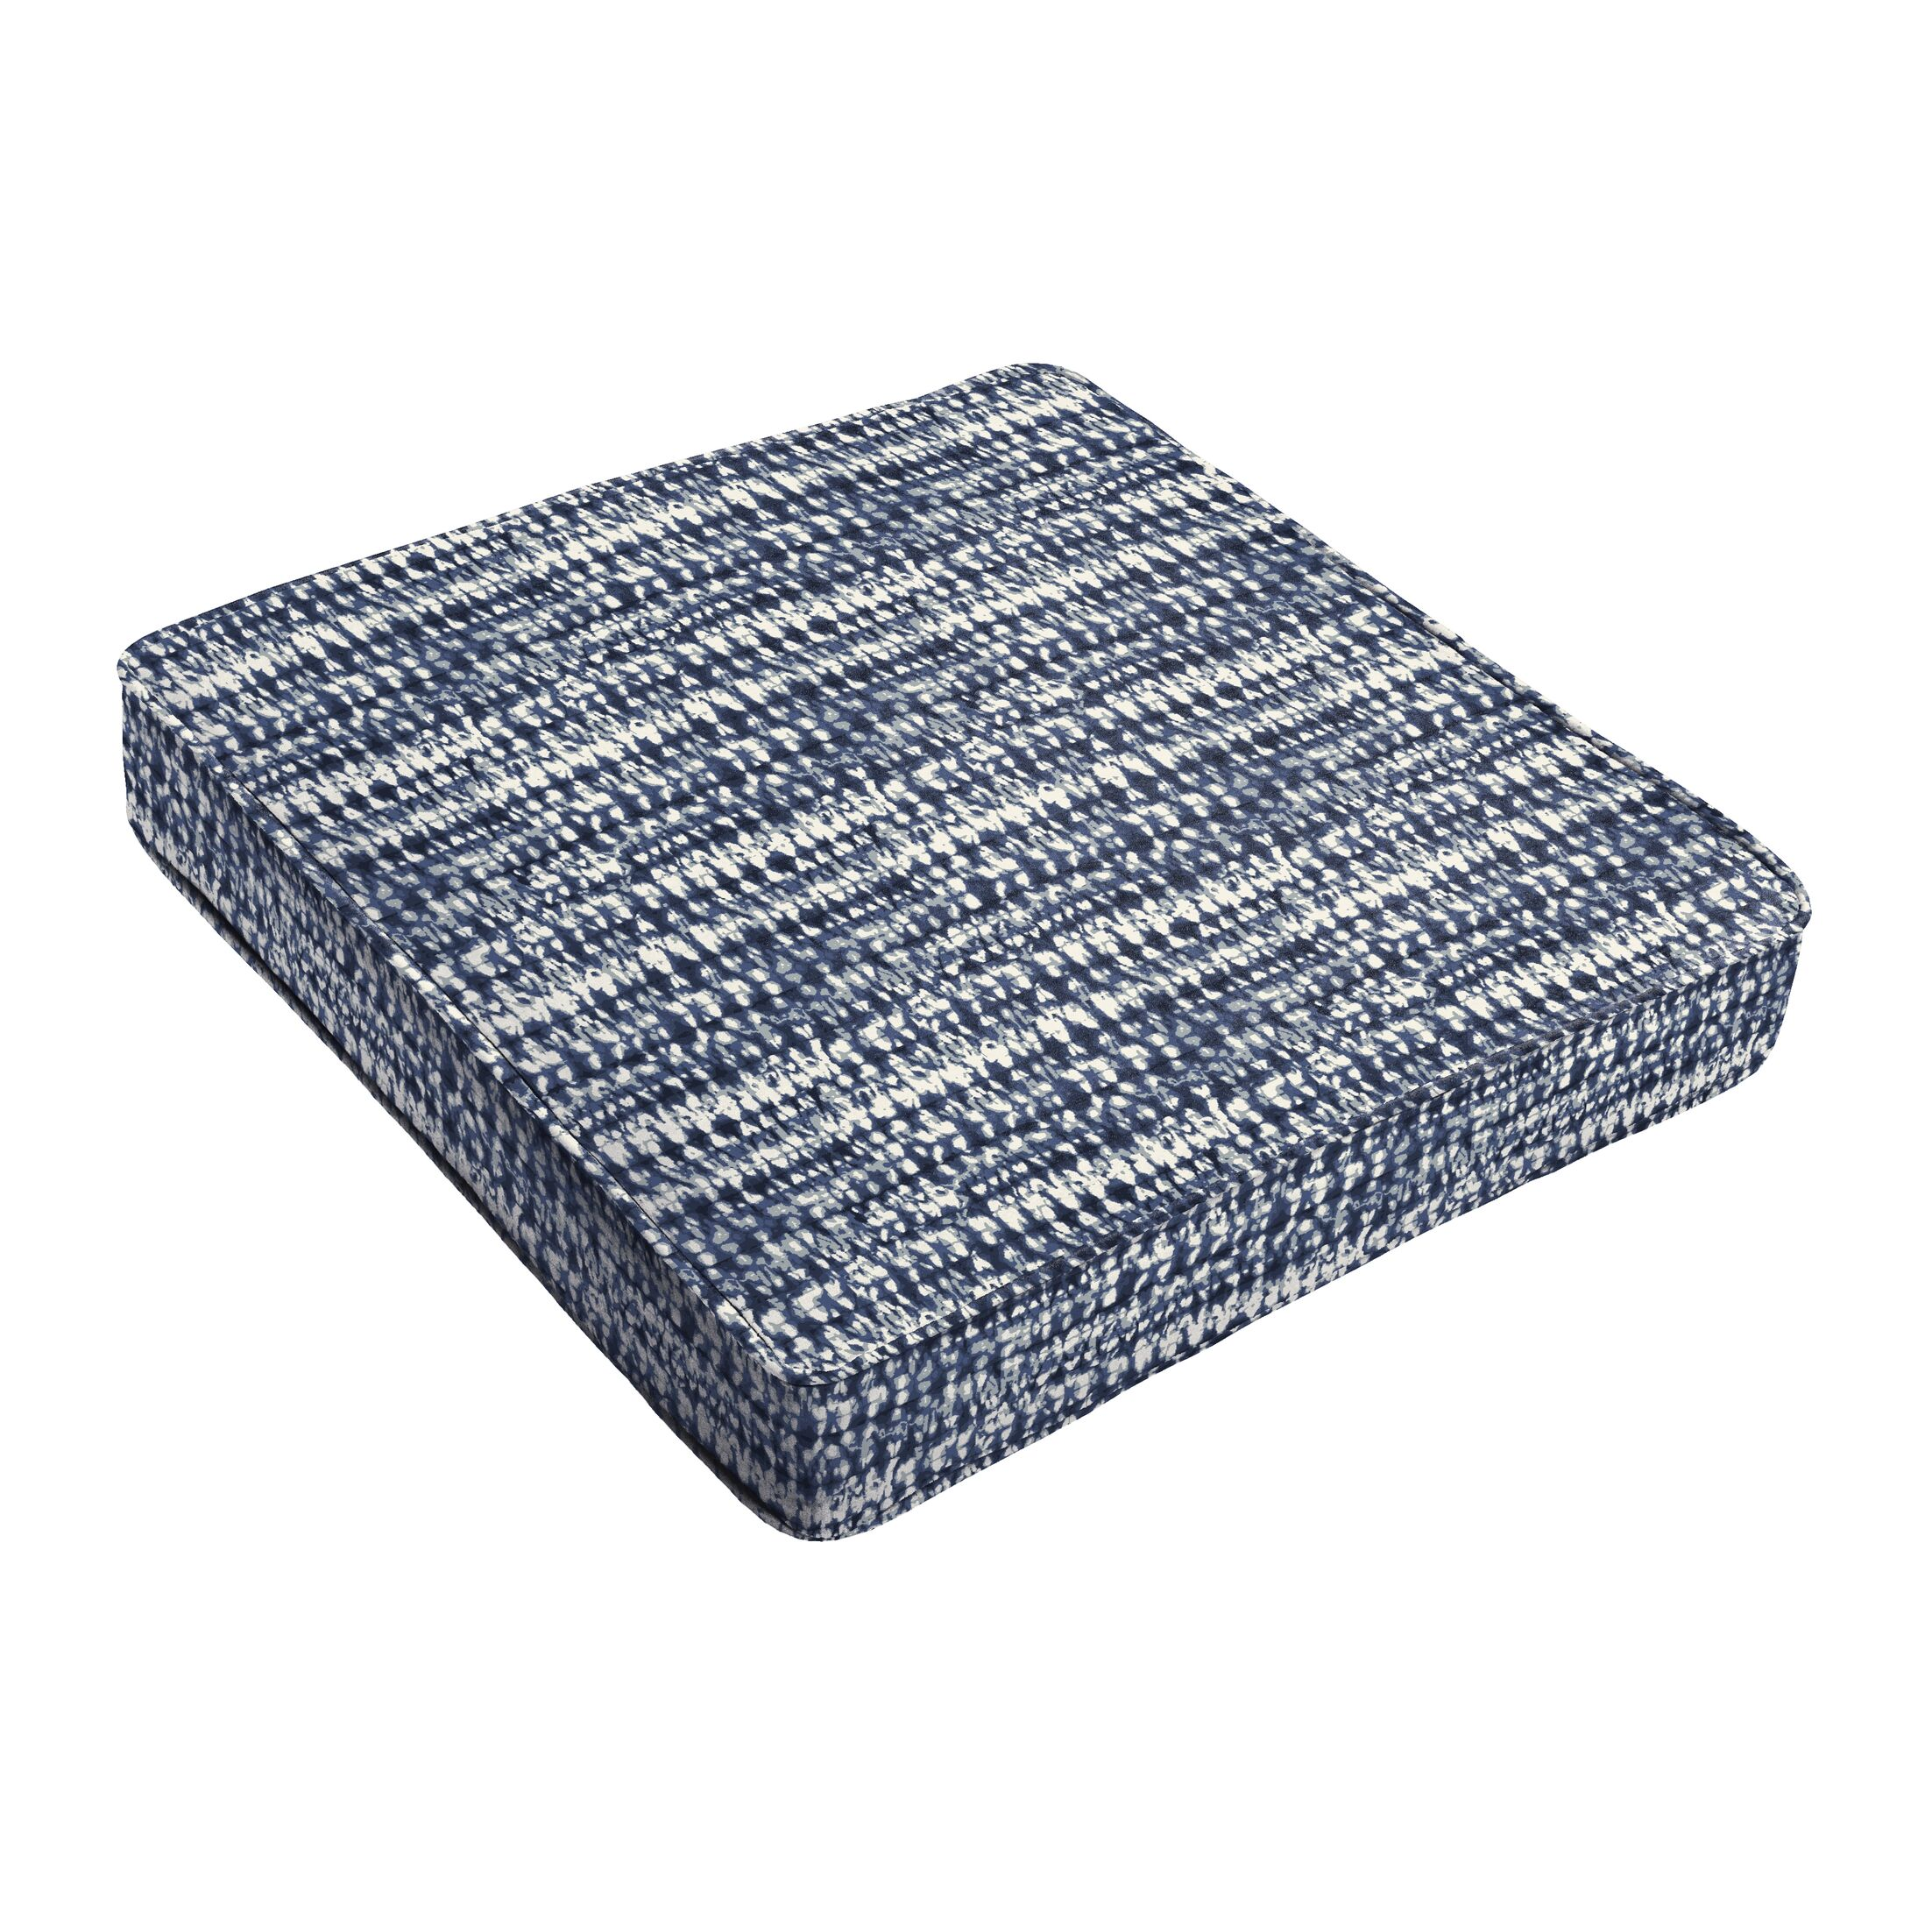 Piped Indoor/Outdoor Dining Chair Cushion Size: 5